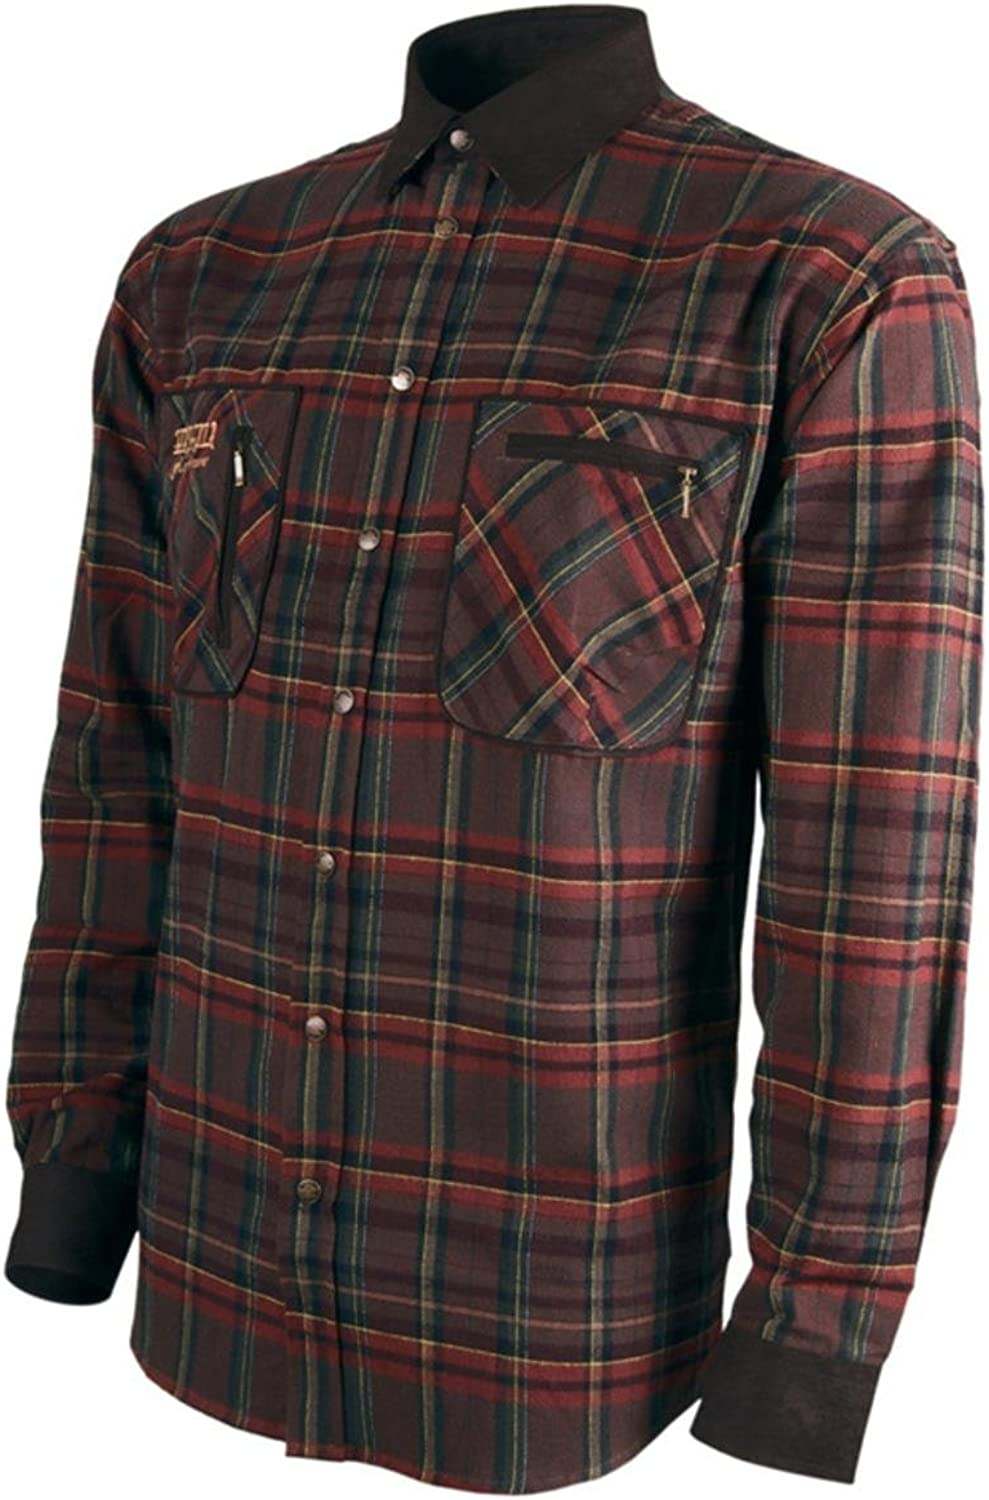 Harkila Pajala shirt Red check Medium Red Medium Red